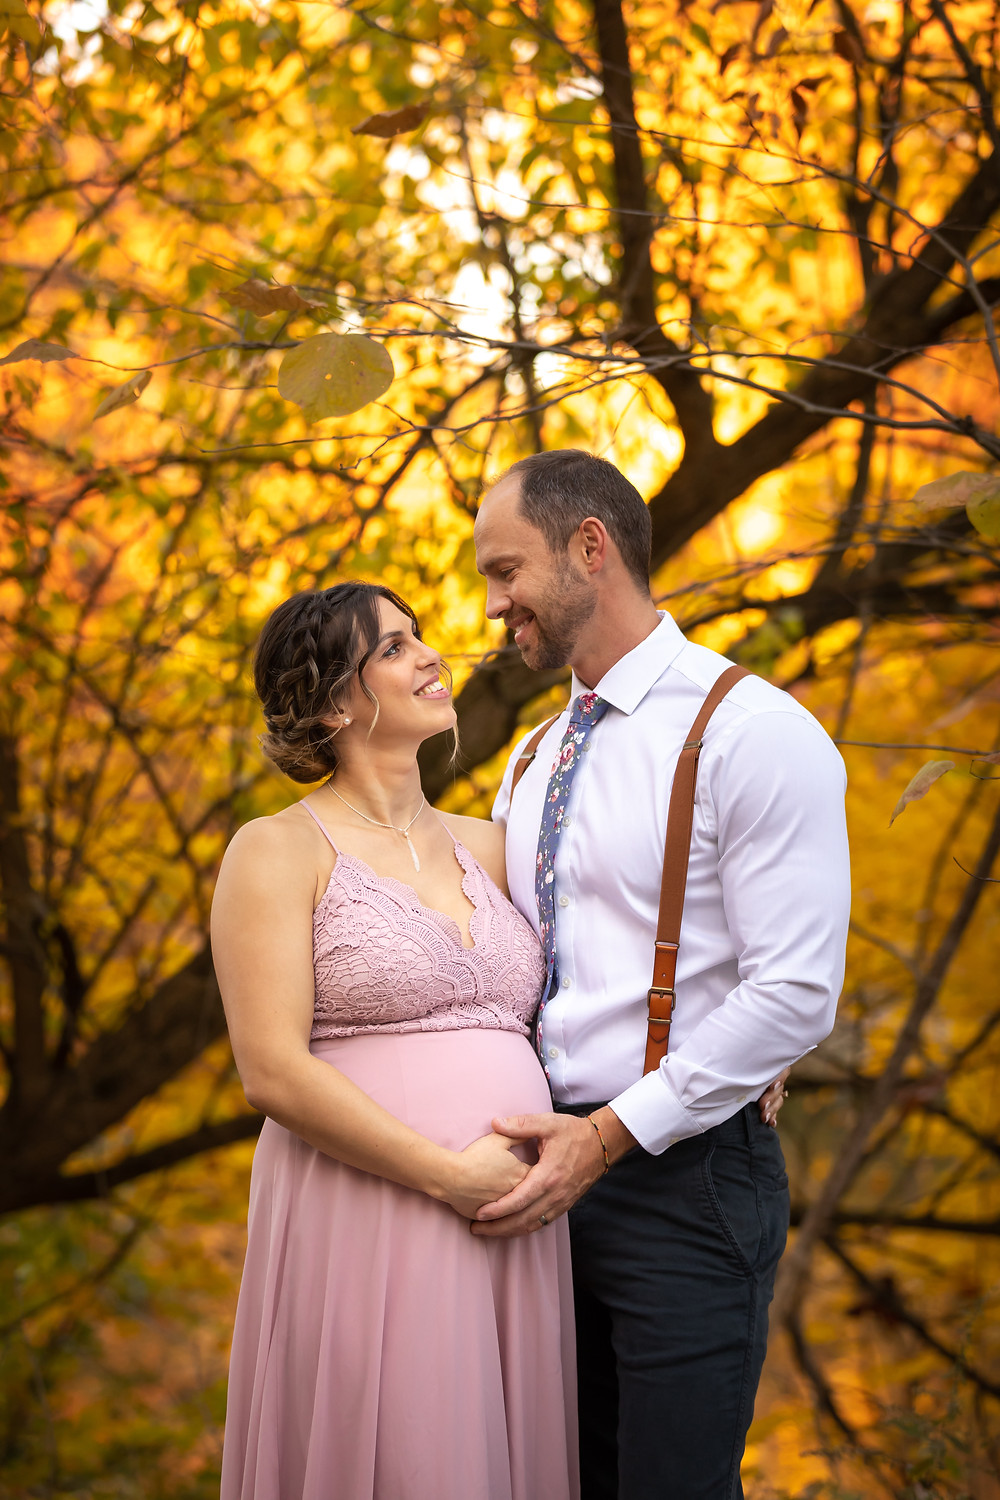 Cincinnati wedding photographer captures image of groom and bride hugging each other smiling under autumn trees.